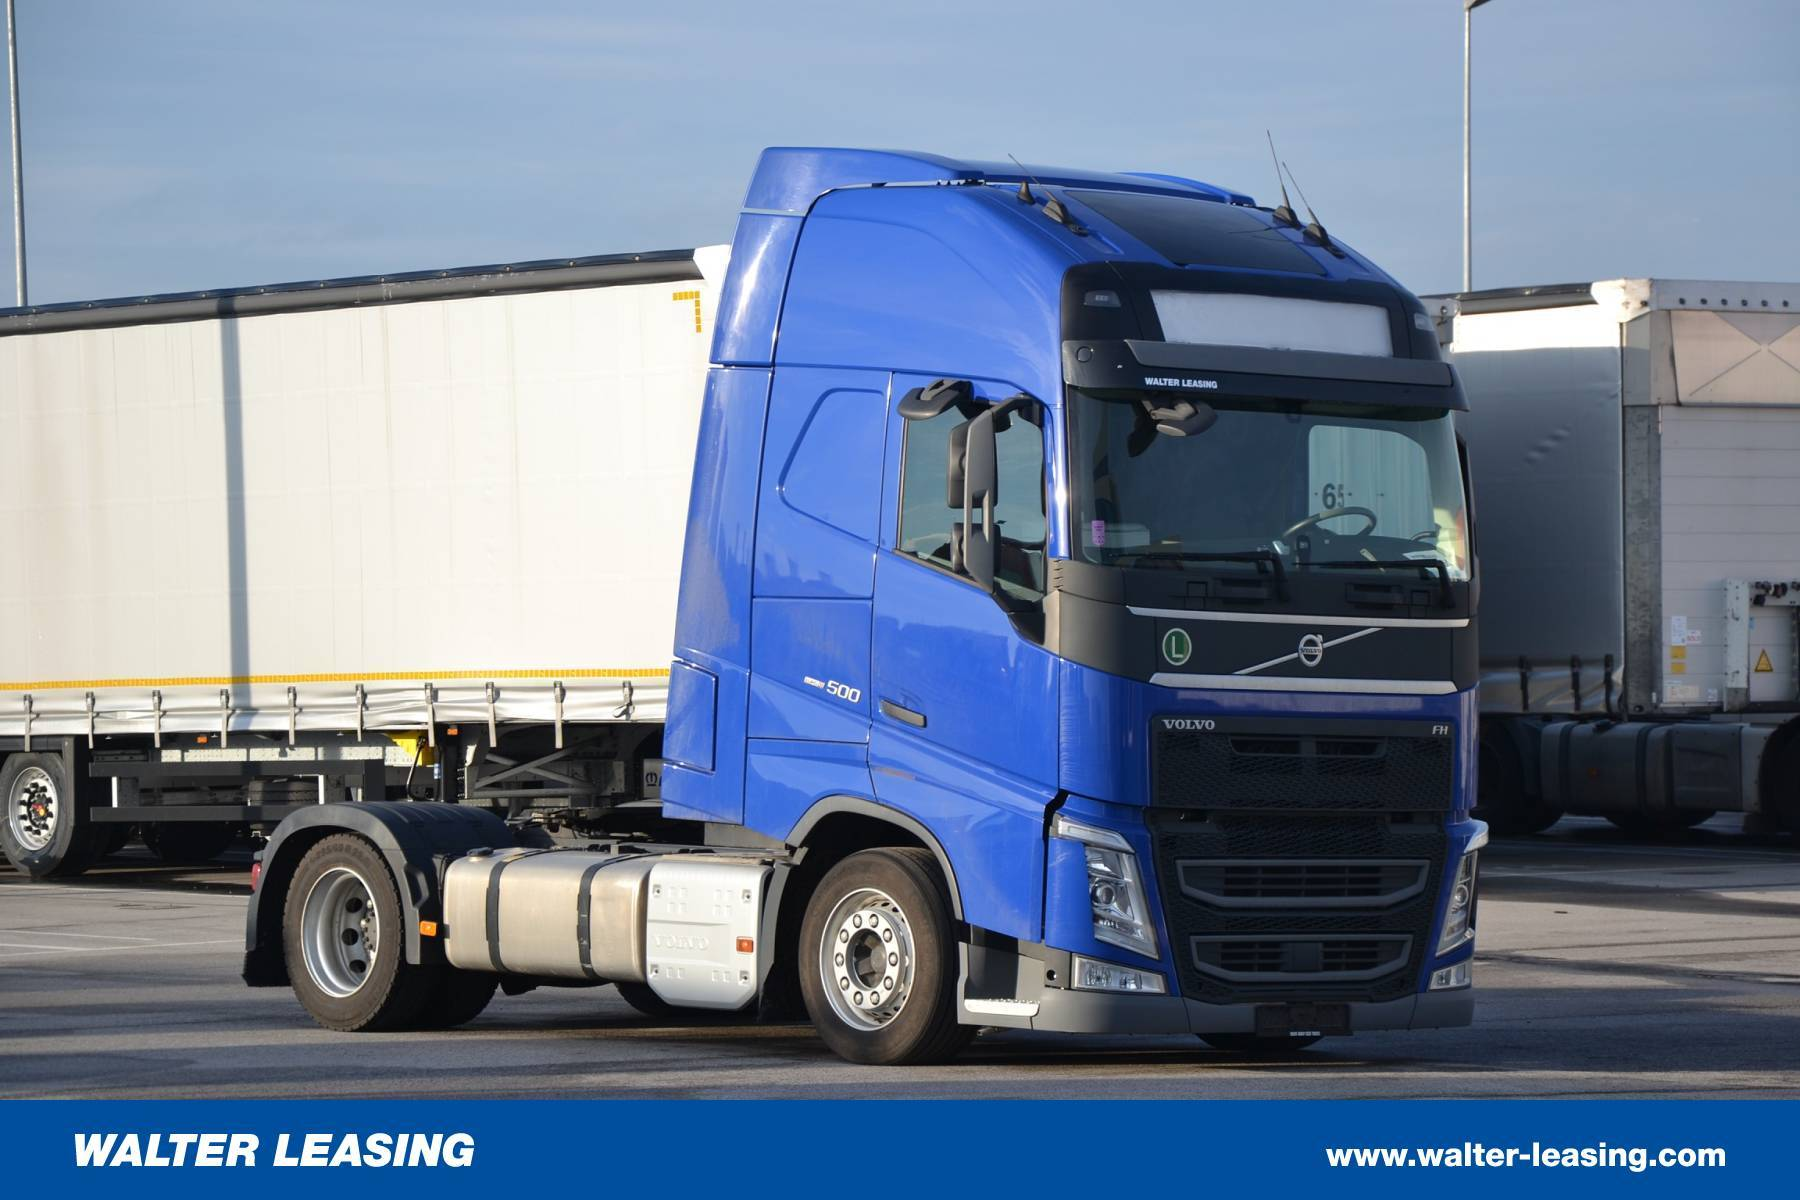 Volvo Mega Tractor Unit FH 500 4x2 Used WALTER LEASING